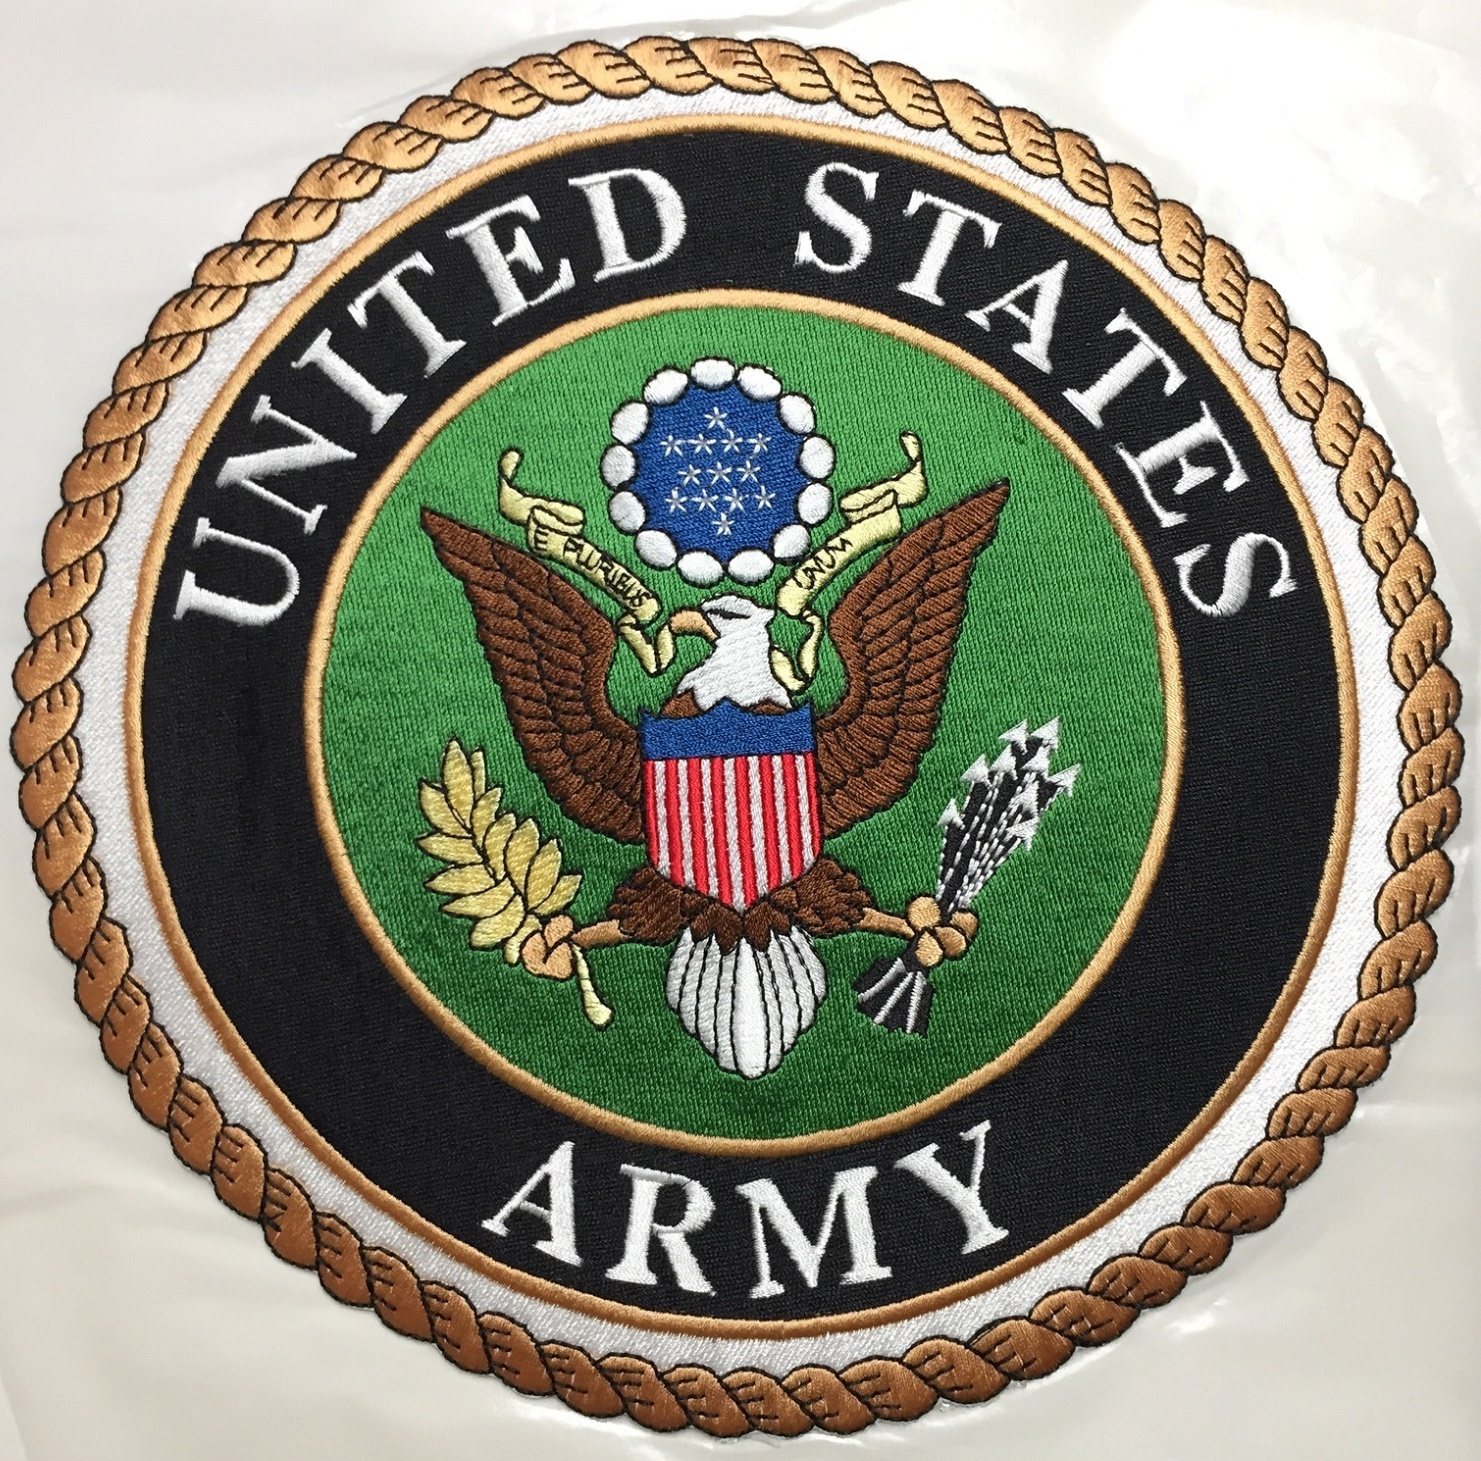 Applique Army Emblem w/Adhesive